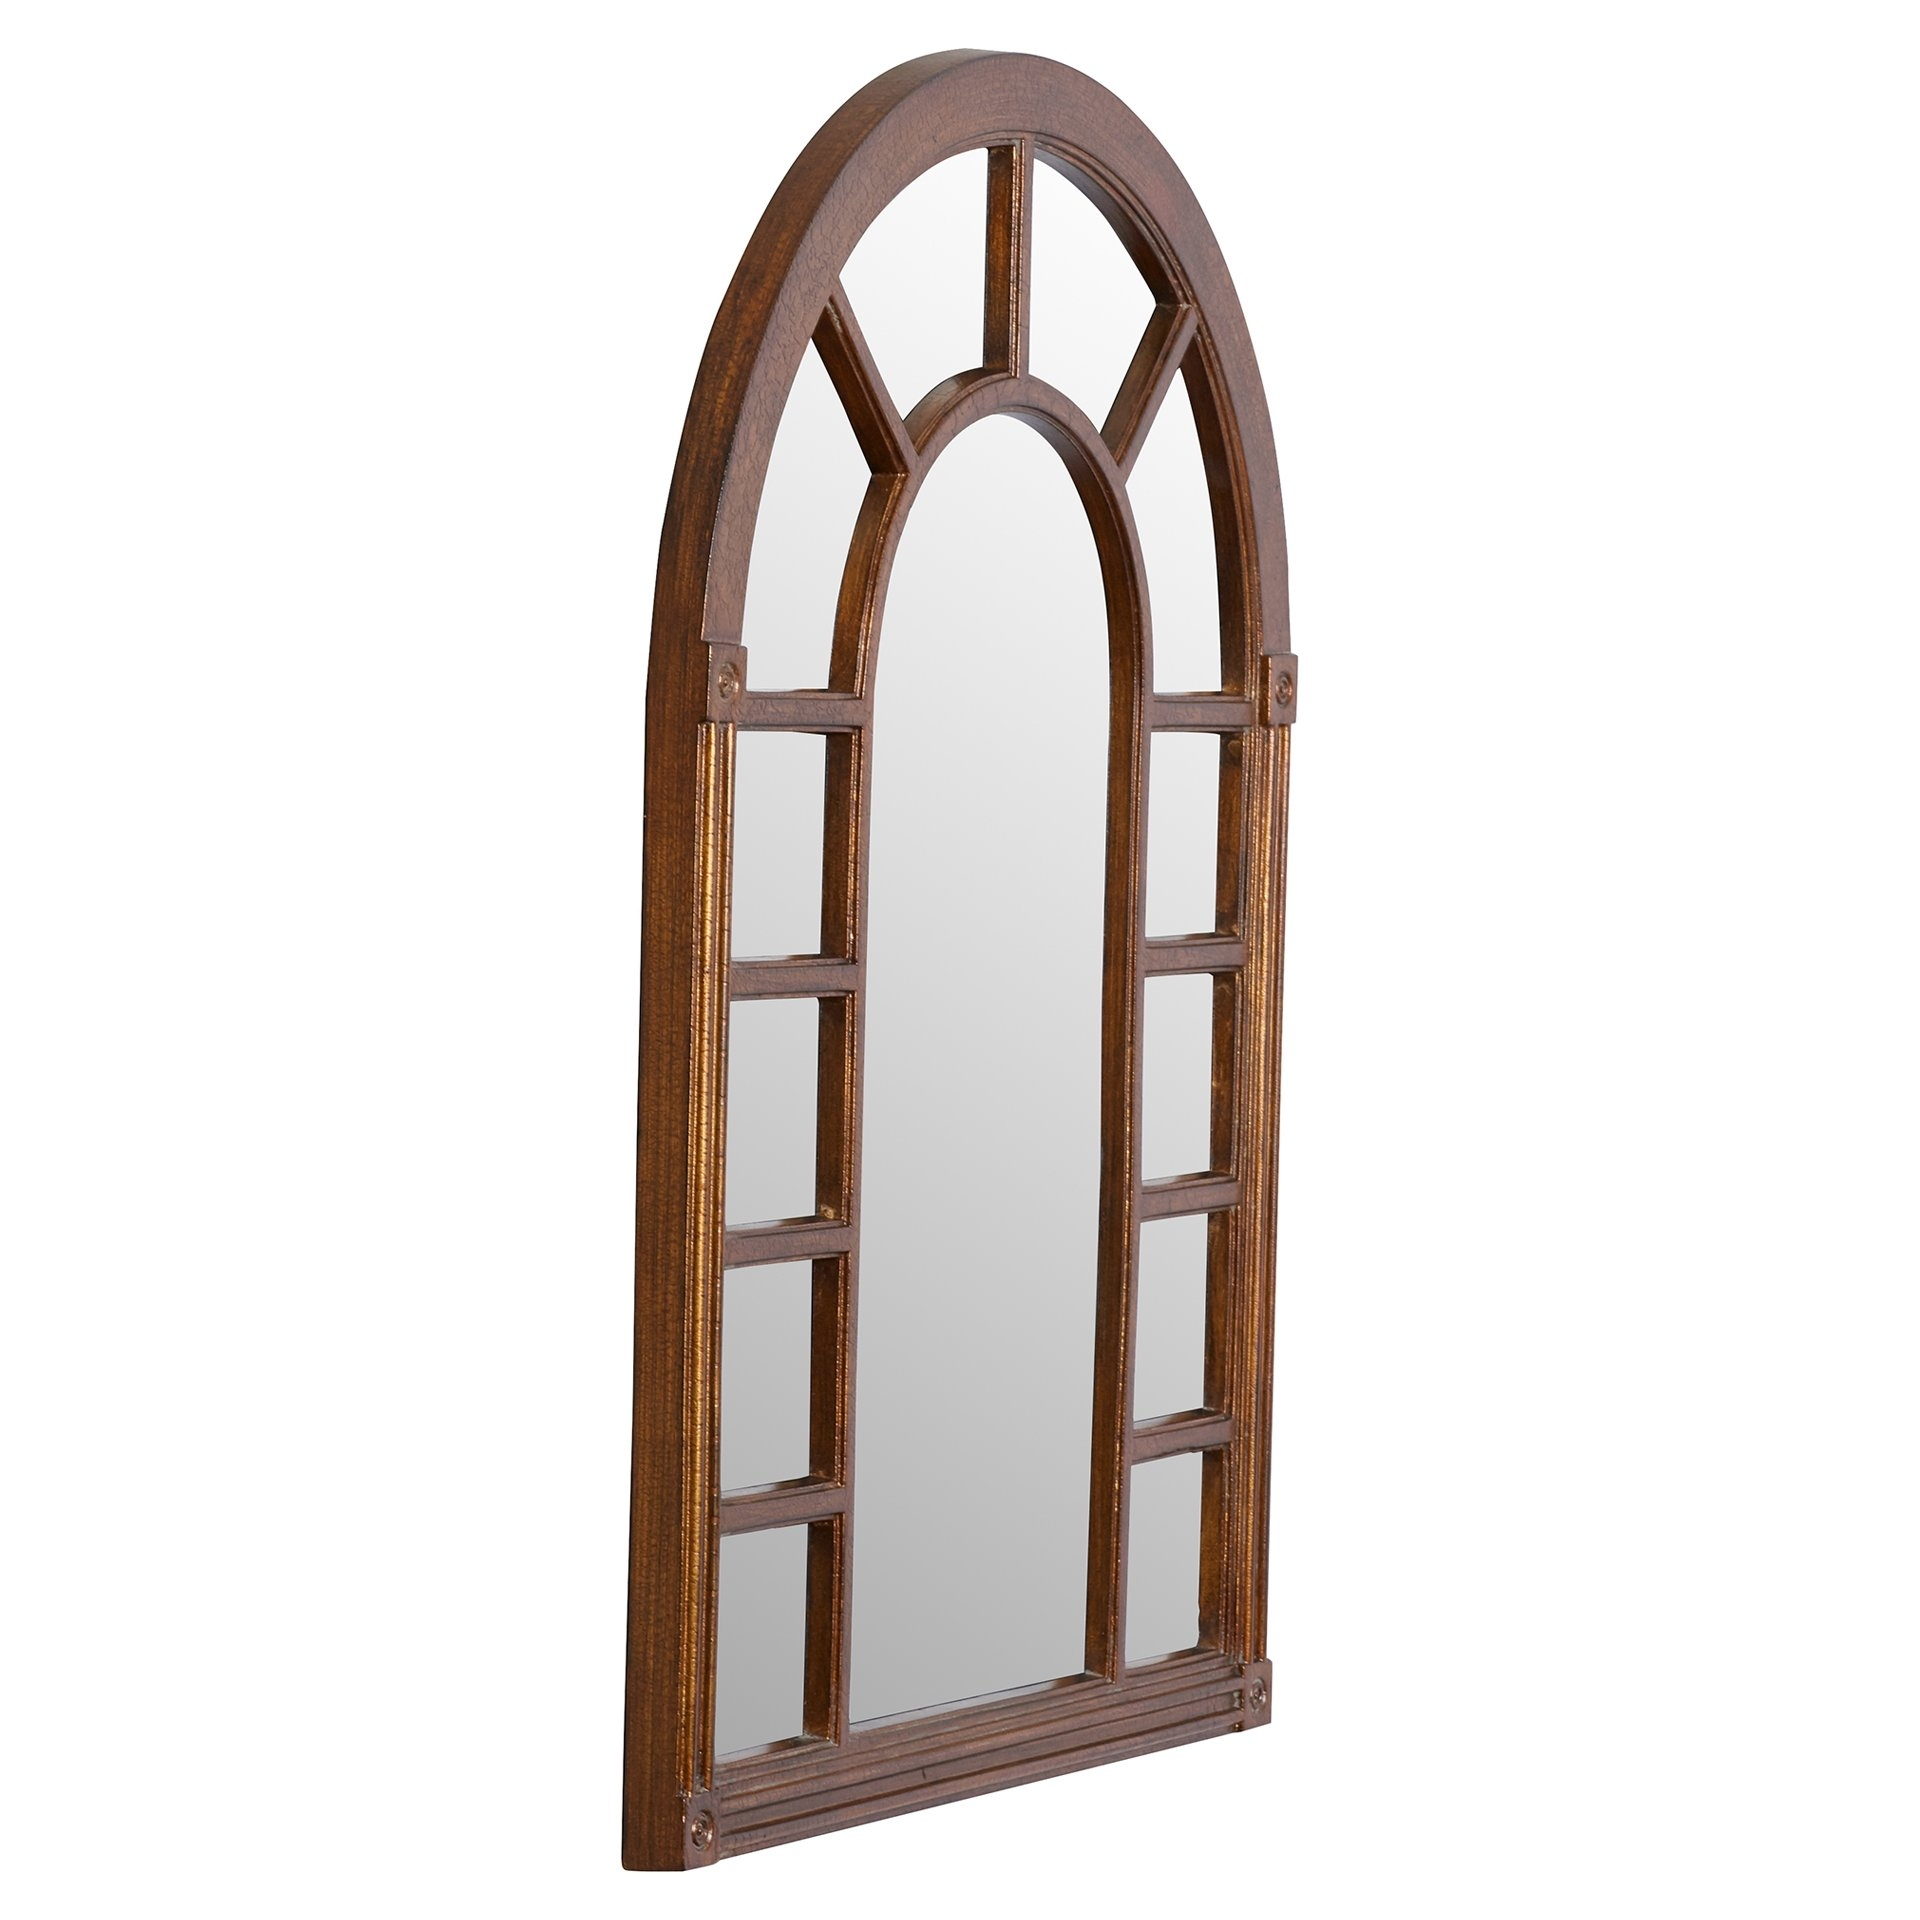 Cathedral Arched Oversized Wall Mirror Reviews Joss Main Inside Arched Wall Mirror (View 15 of 15)